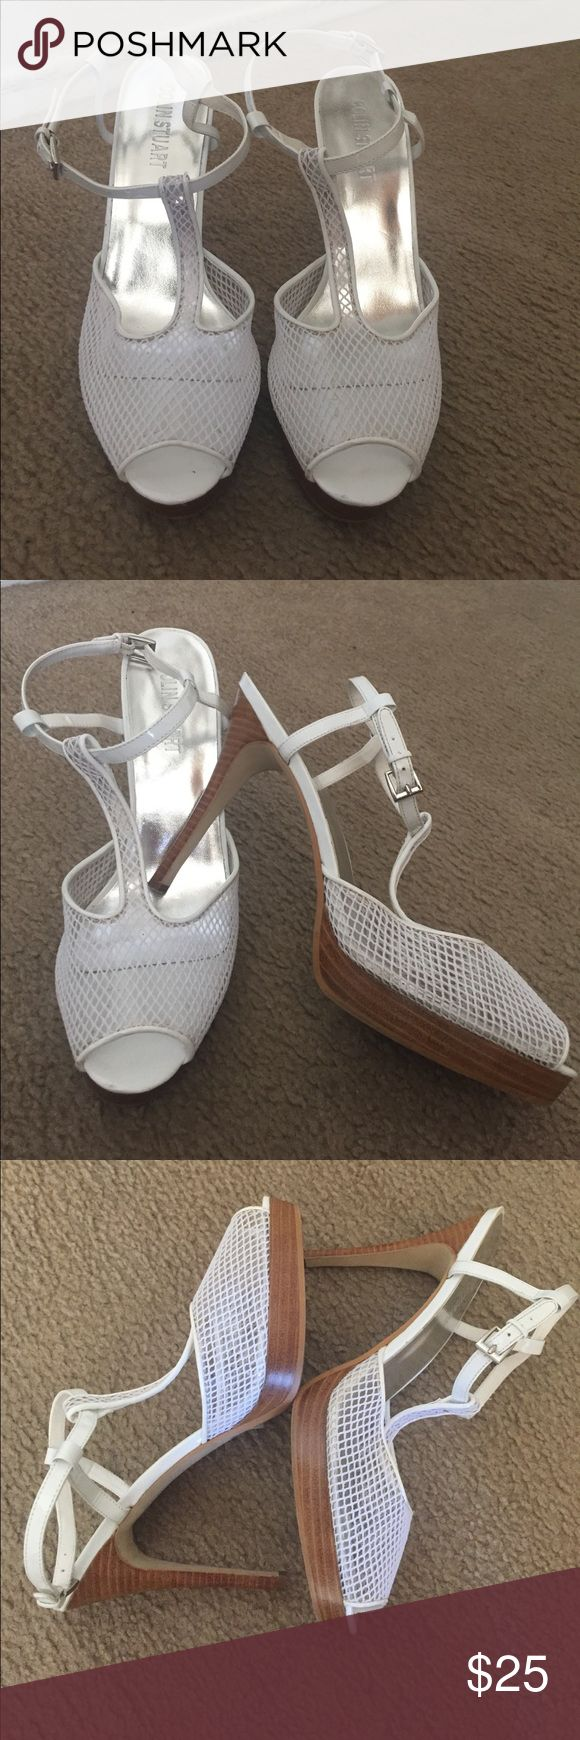 "Colin Stuart White Ankle Strapped Heels Colin Stuart White Ankle Strapped Heels   Size: 10   Brown heel.      Heel height: 4""   Small platform.    Gently used in great condition Colin Stuart Shoes Heels"